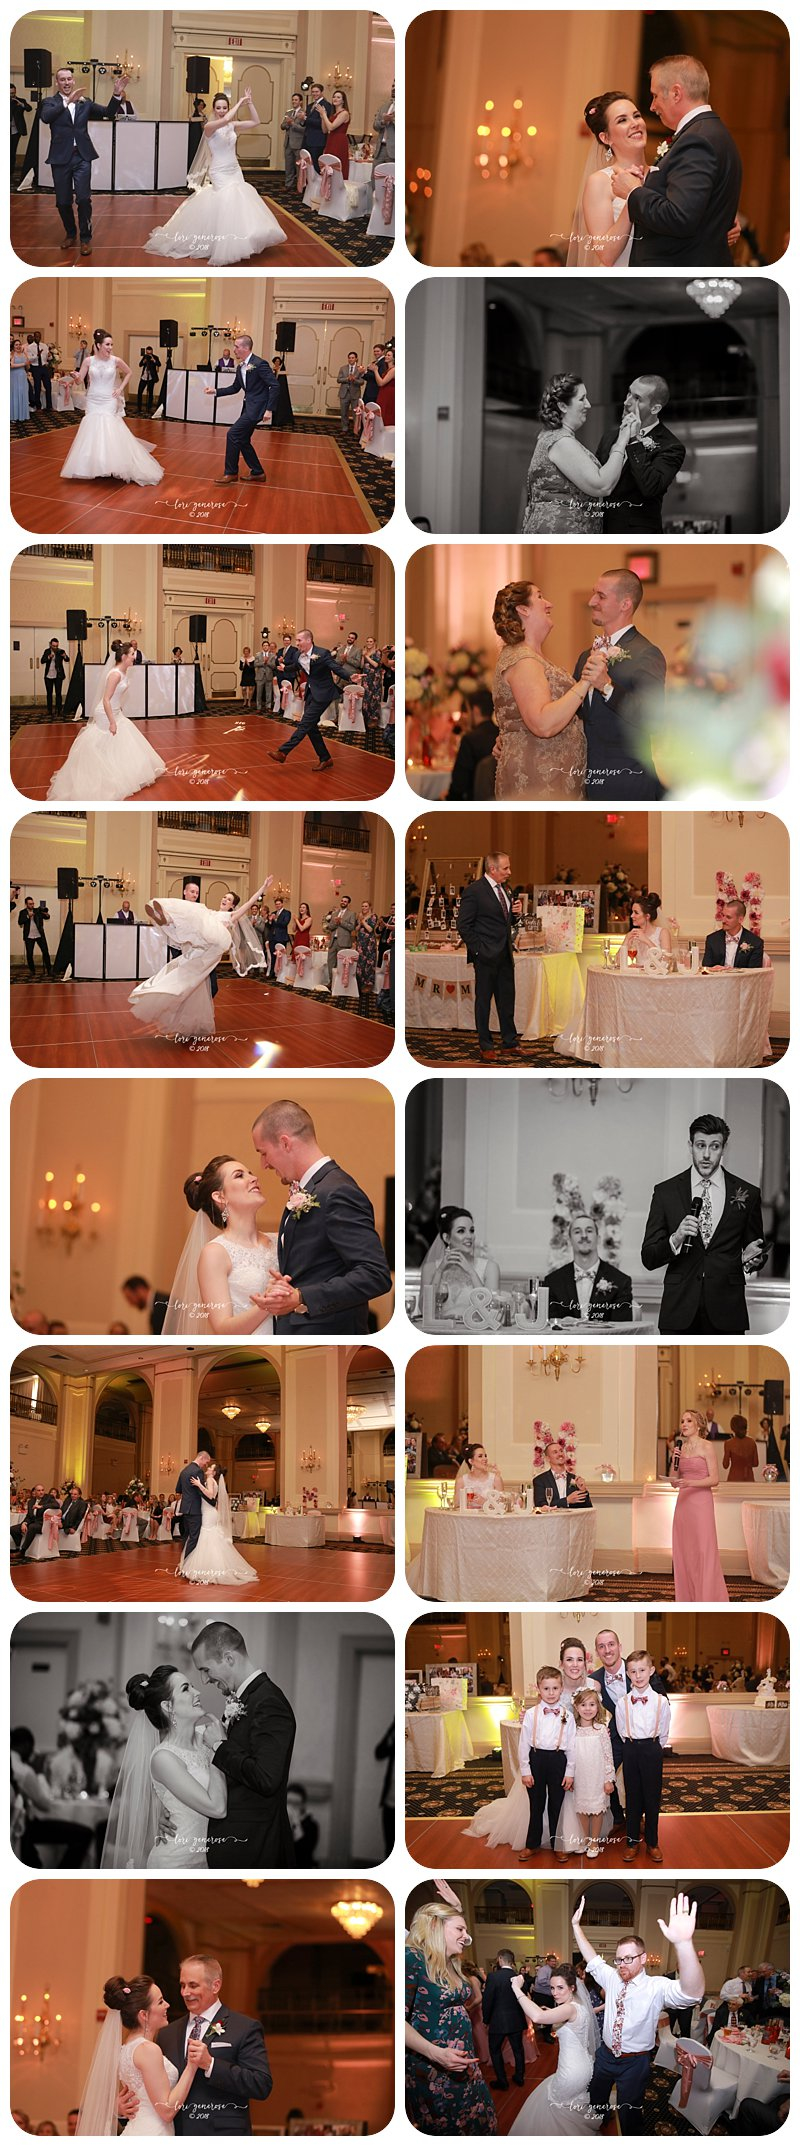 weddingreceptionathistorichotelbethlehempaweddingvenuecolonialdistrictfirstdancemothersondancefatherdaughterdanceweddingtoasts.JPG